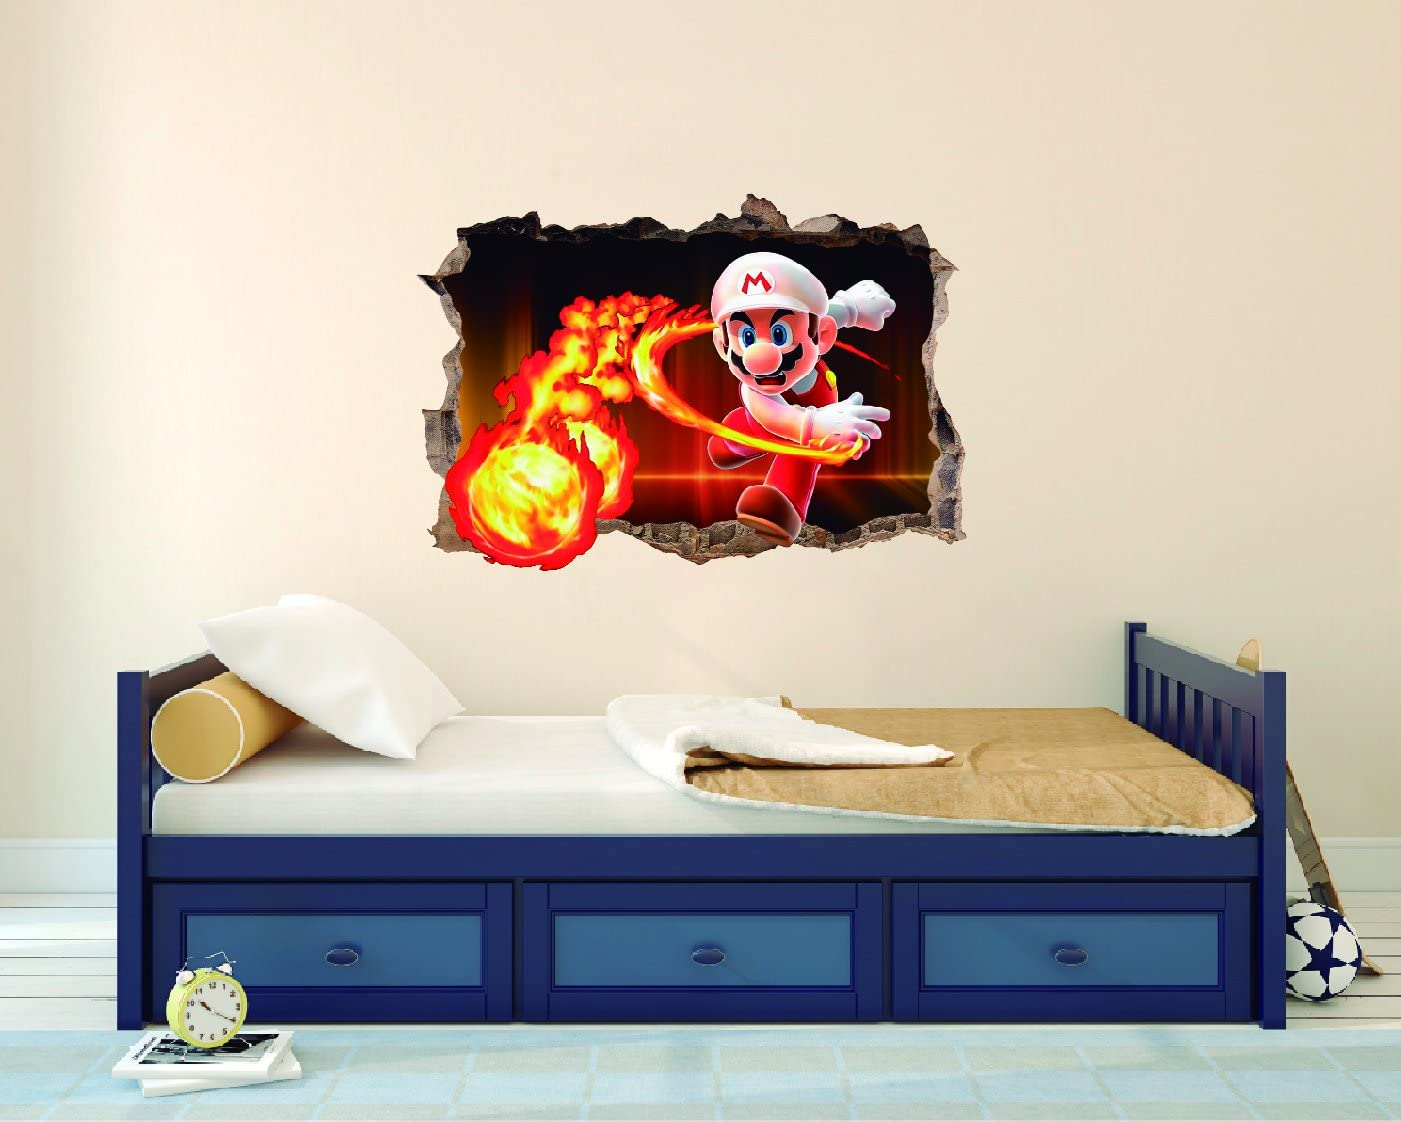 Fireball Character Wall Decal - 3D Smashed Wall Effect - Wall Decal for Home Decoration (Wide 20